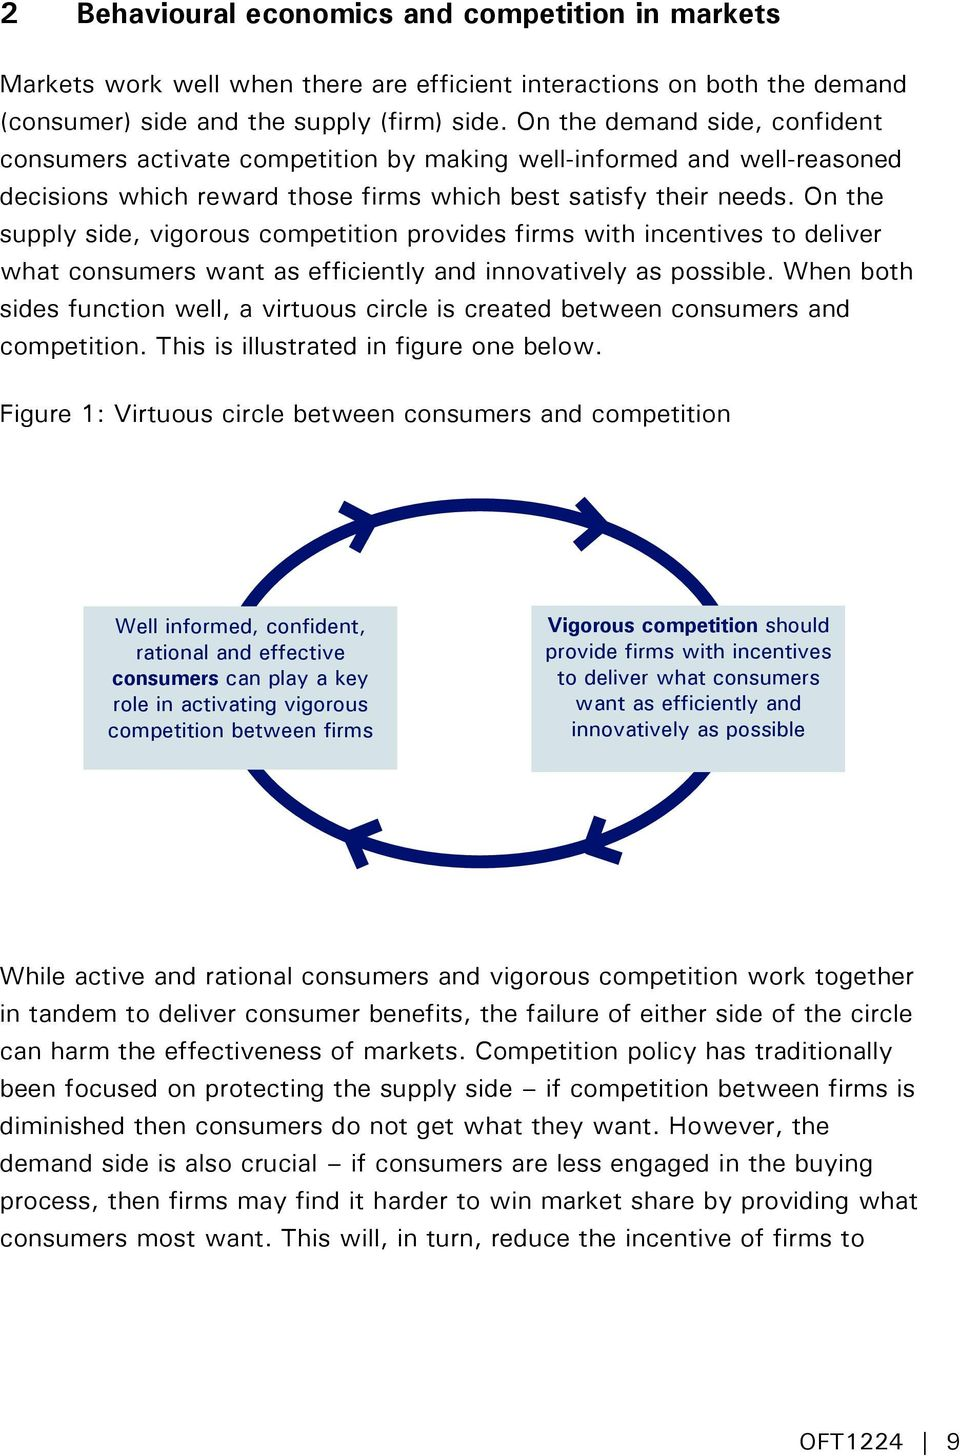 On the supply side, vigorous competition provides firms with incentives to deliver what consumers want as efficiently and innovatively as possible.